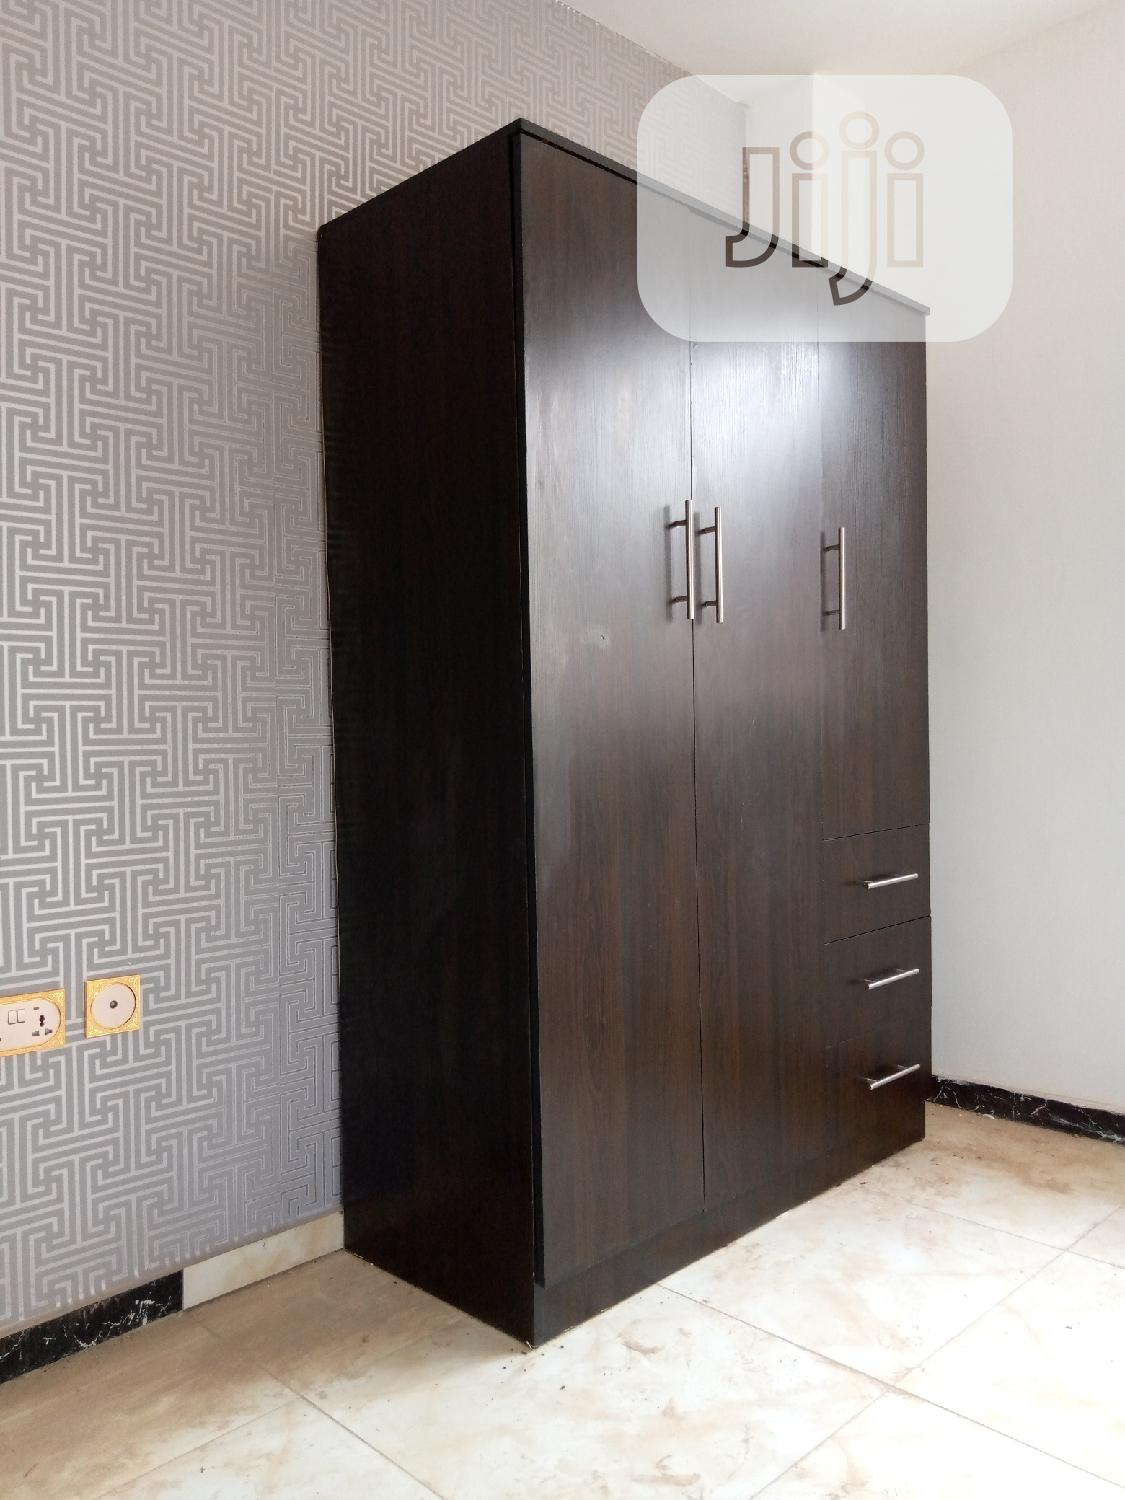 Furniture and Interior Decorator | Other Services for sale in Ibadan, Oyo State, Nigeria